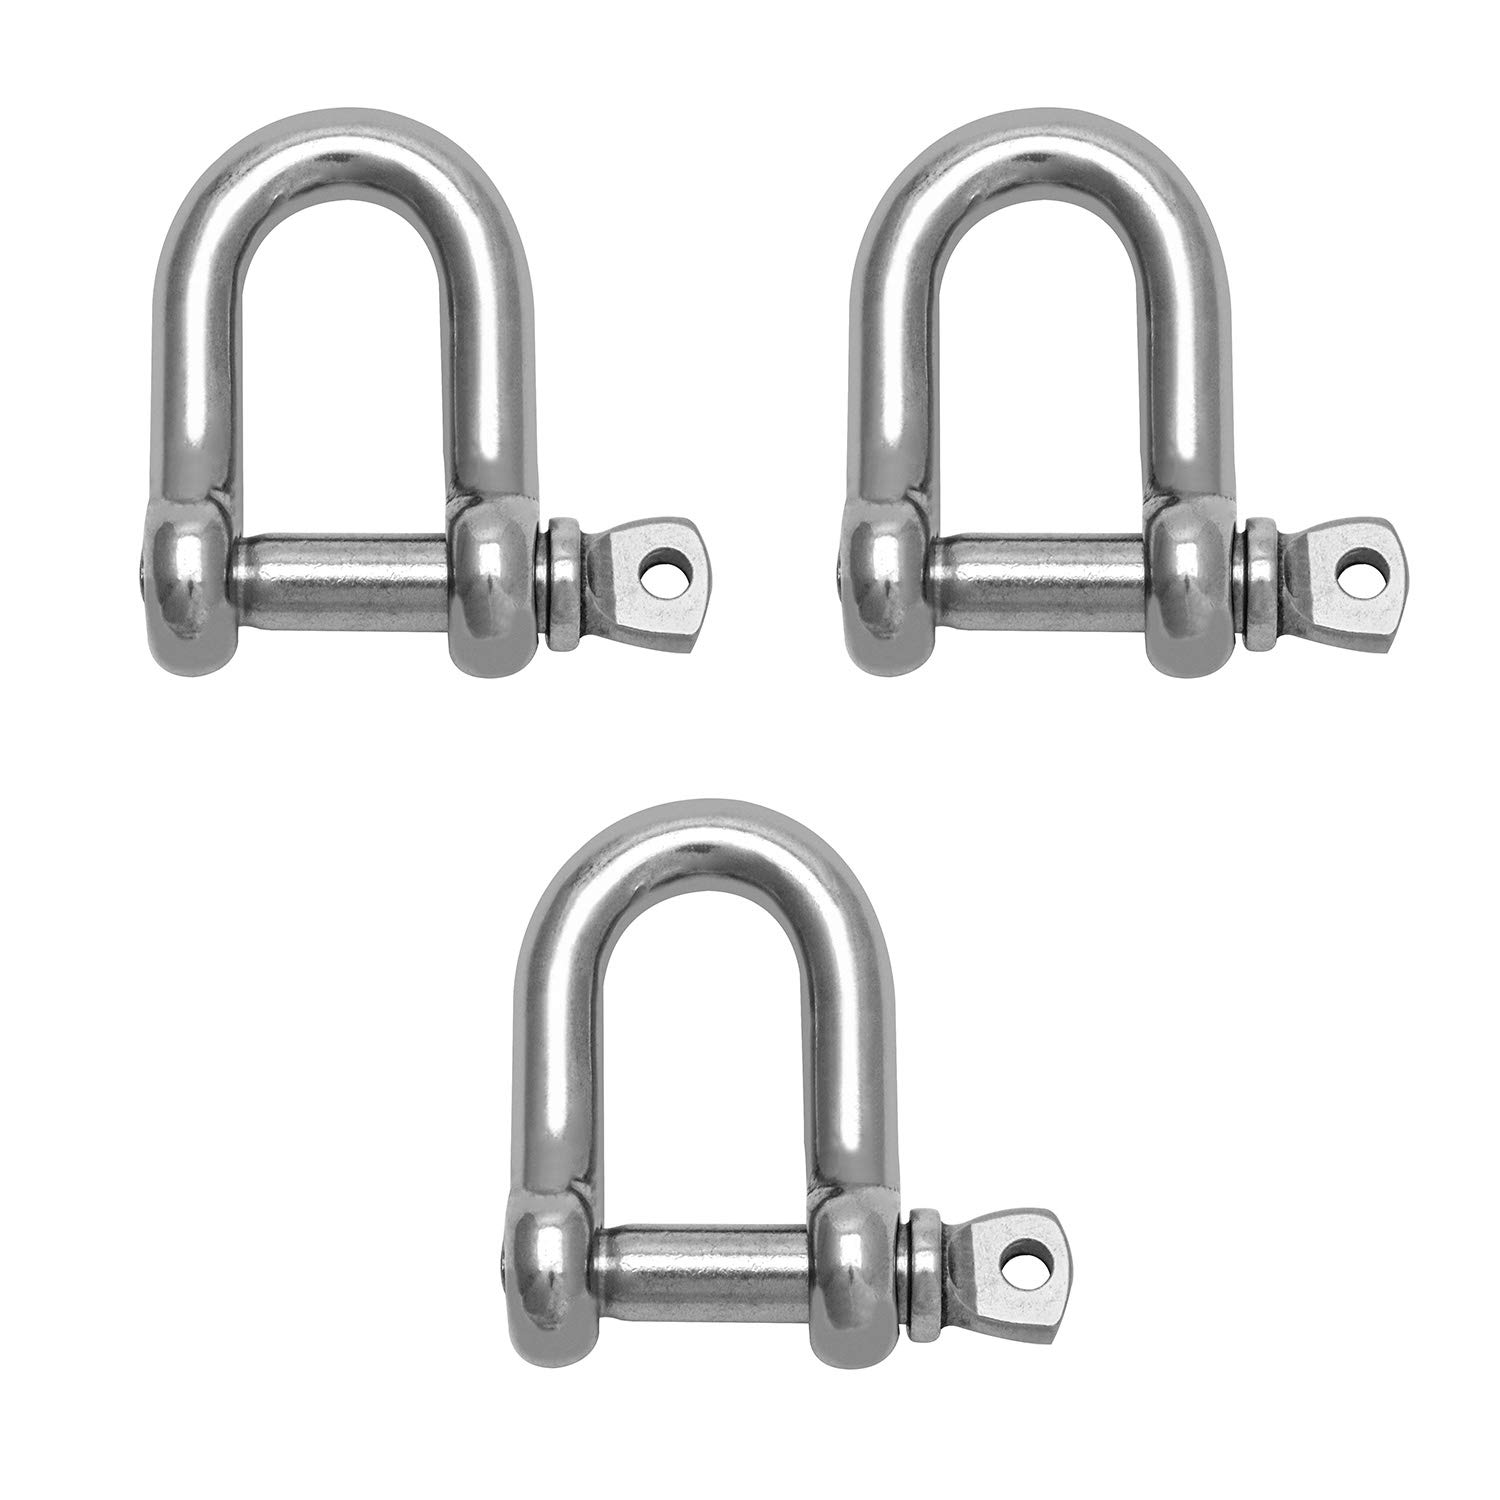 QWORK 3PCS 3//8 M10 Ring Shackle Lock 304 Stainless Steel Bow Shackle for Heavy Duty Construction Hauling Vehicle Recovery